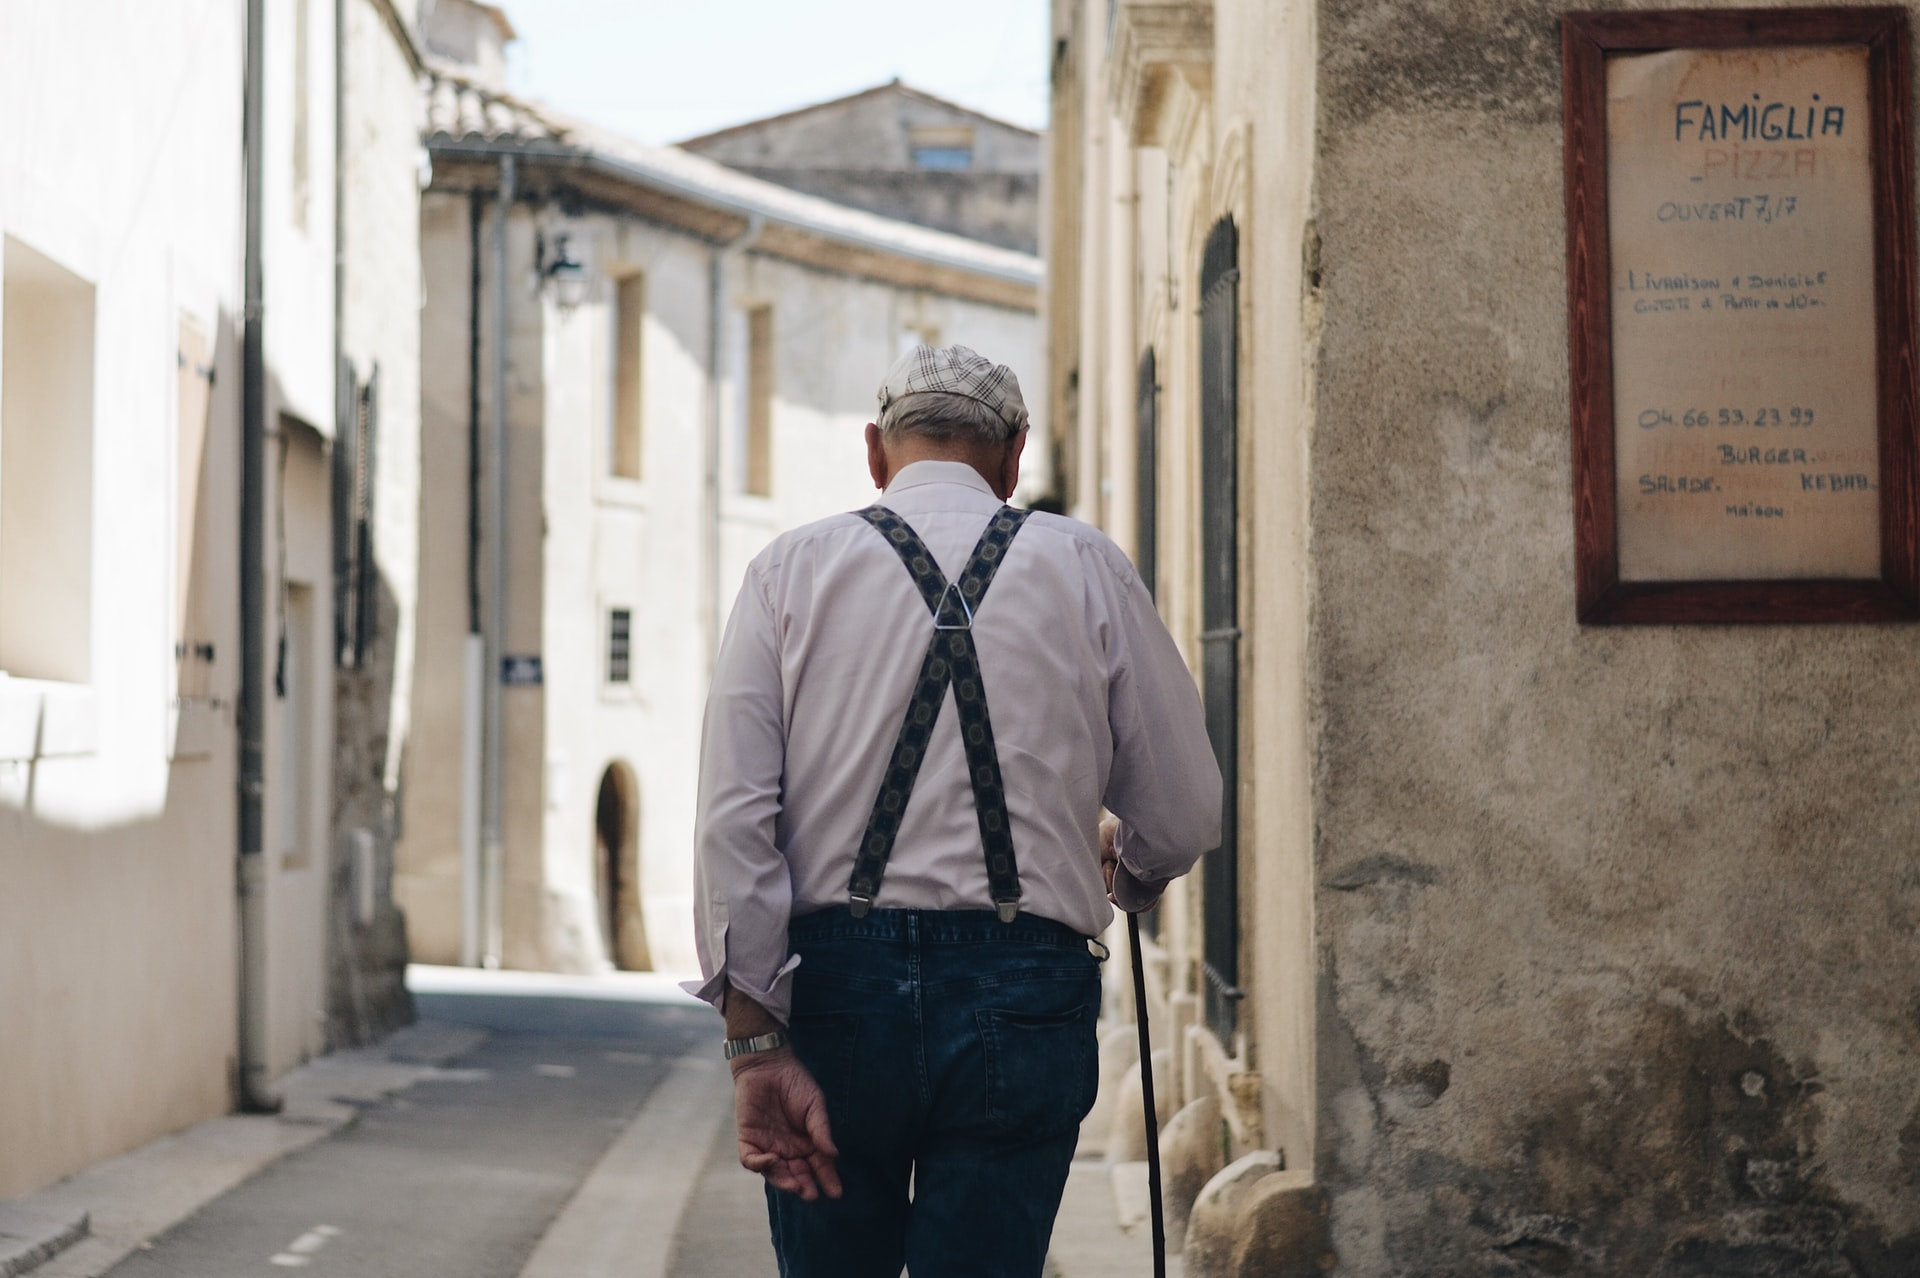 Pension Tips - How to Secure a Decent Pension